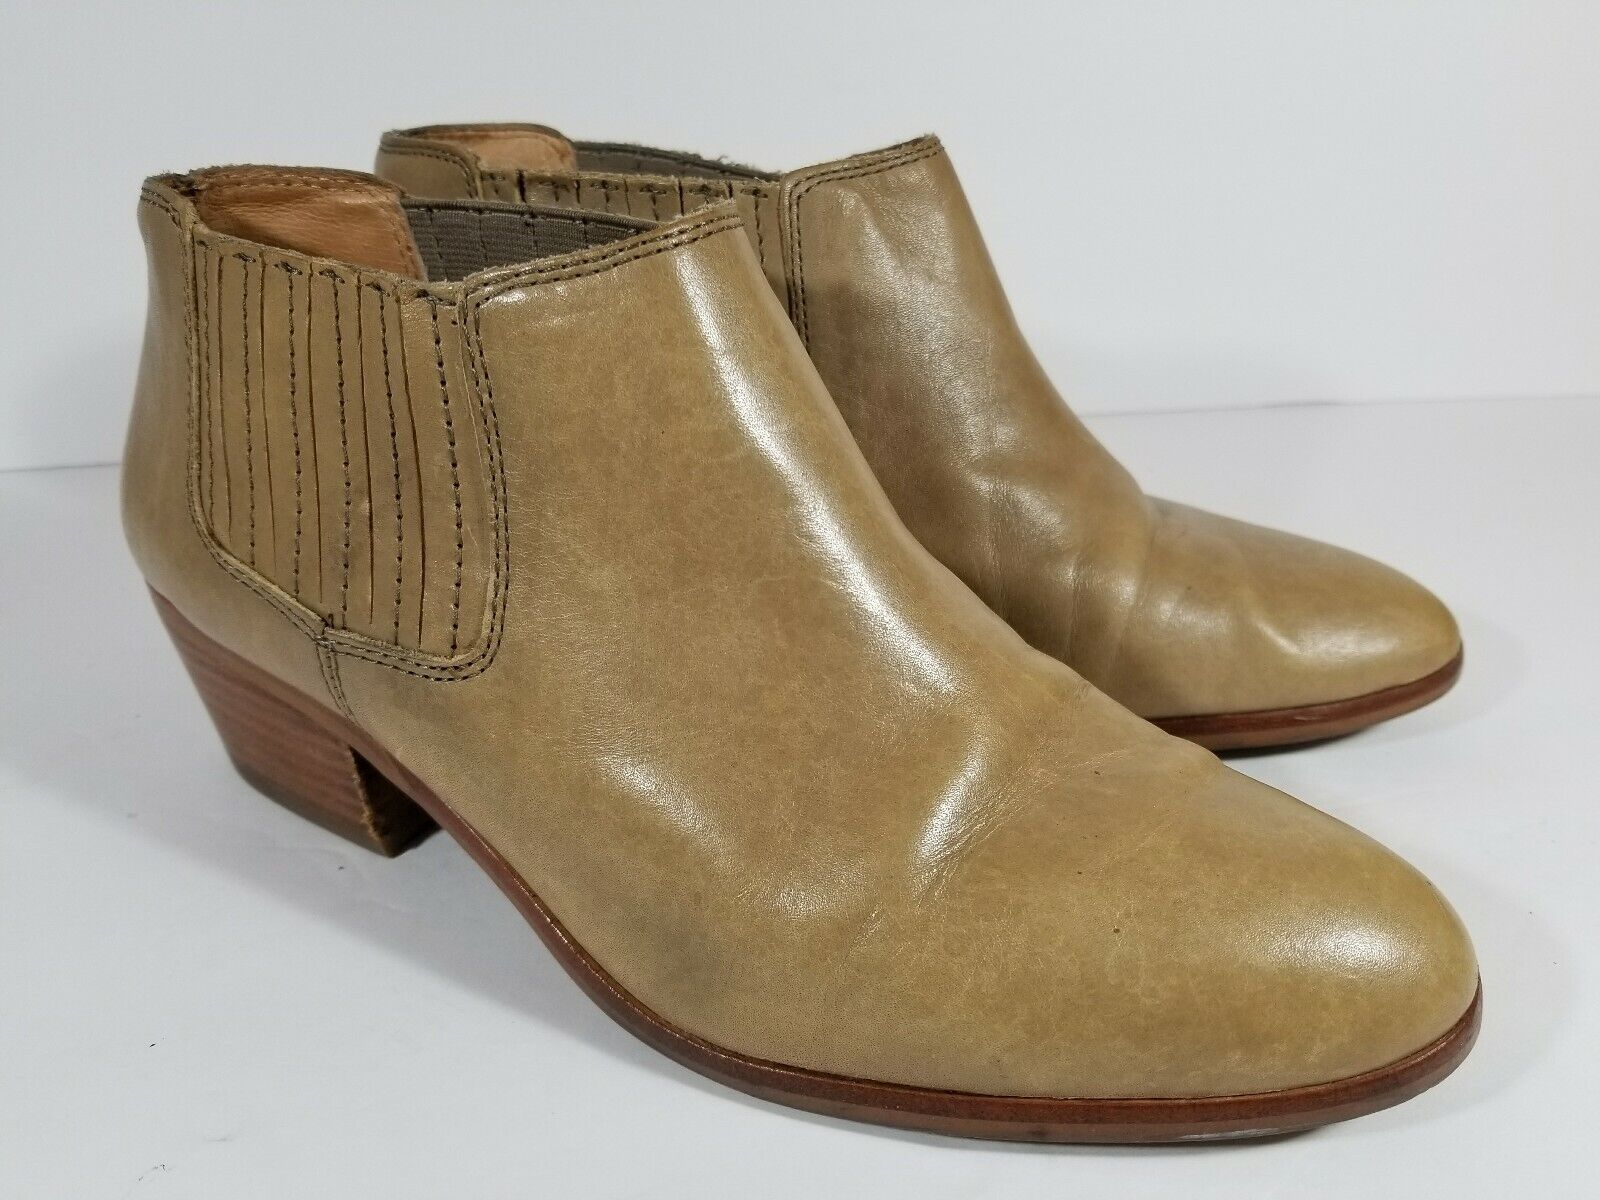 Madewell The Spencer Chelsea Pull On Boots Leather shoes C1375 Ankle Size 9